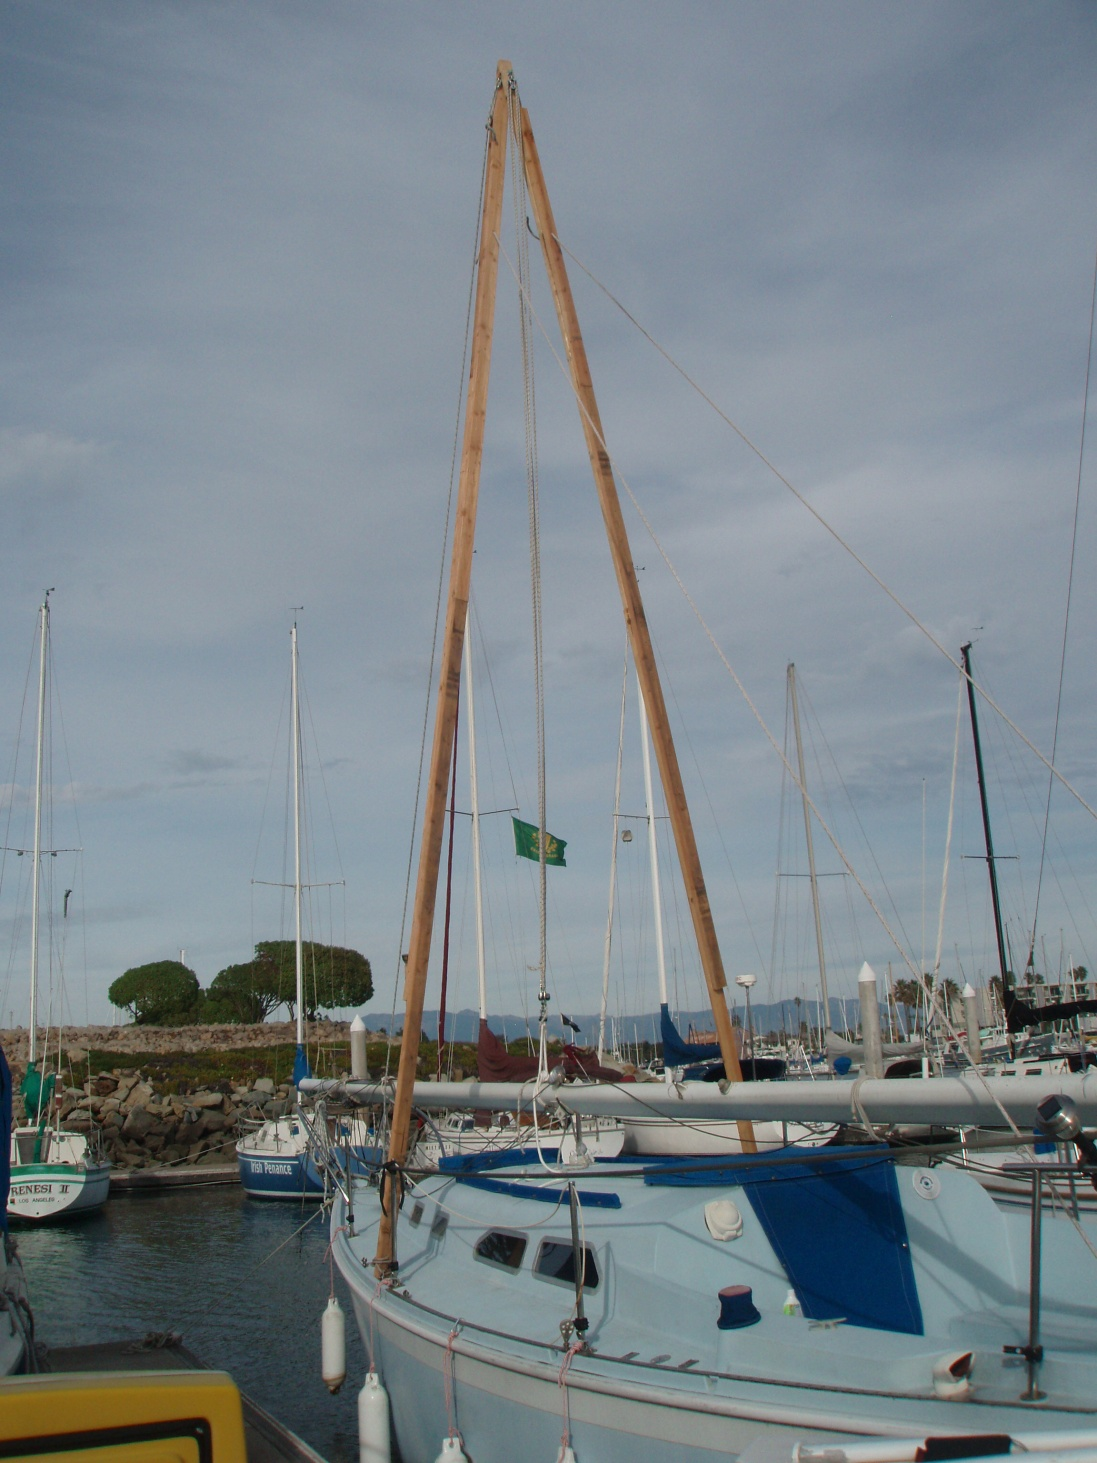 Mast Stepping at the Dock - Page 2 - Cruisers & Sailing Forums